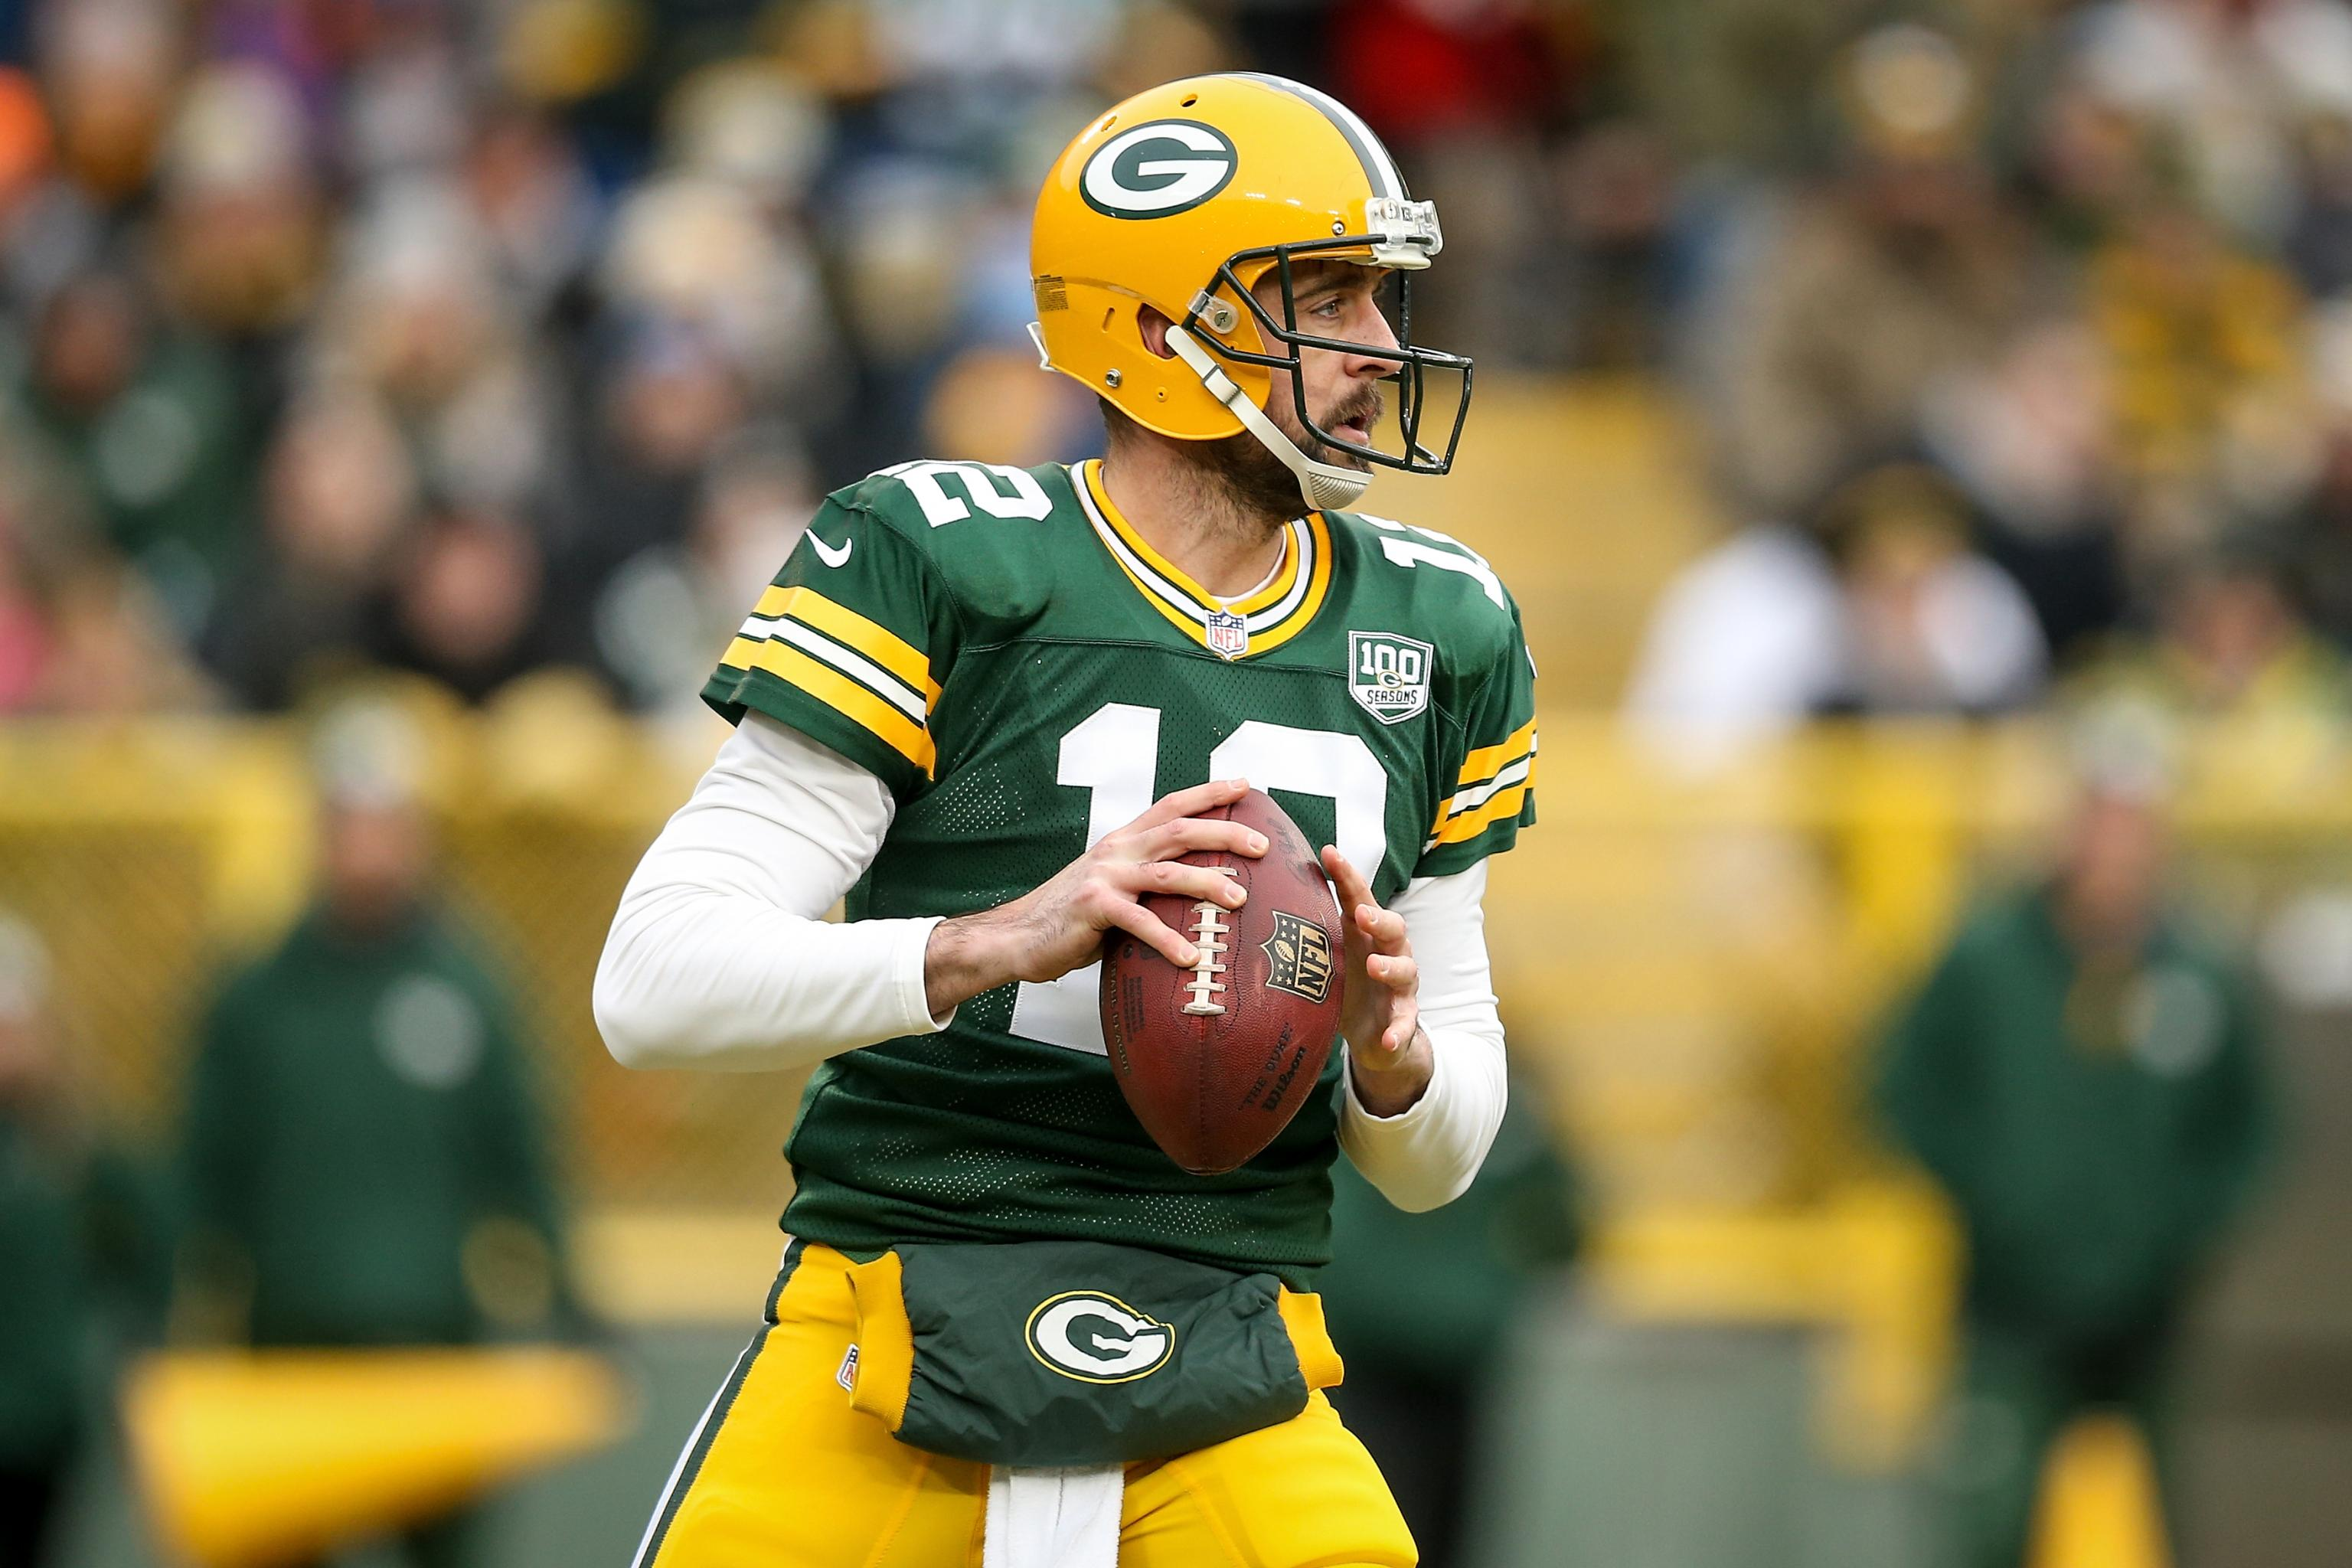 167fc5cb 2019 Green Bay Packers Schedule: Full Listing of Dates, Times and TV ...